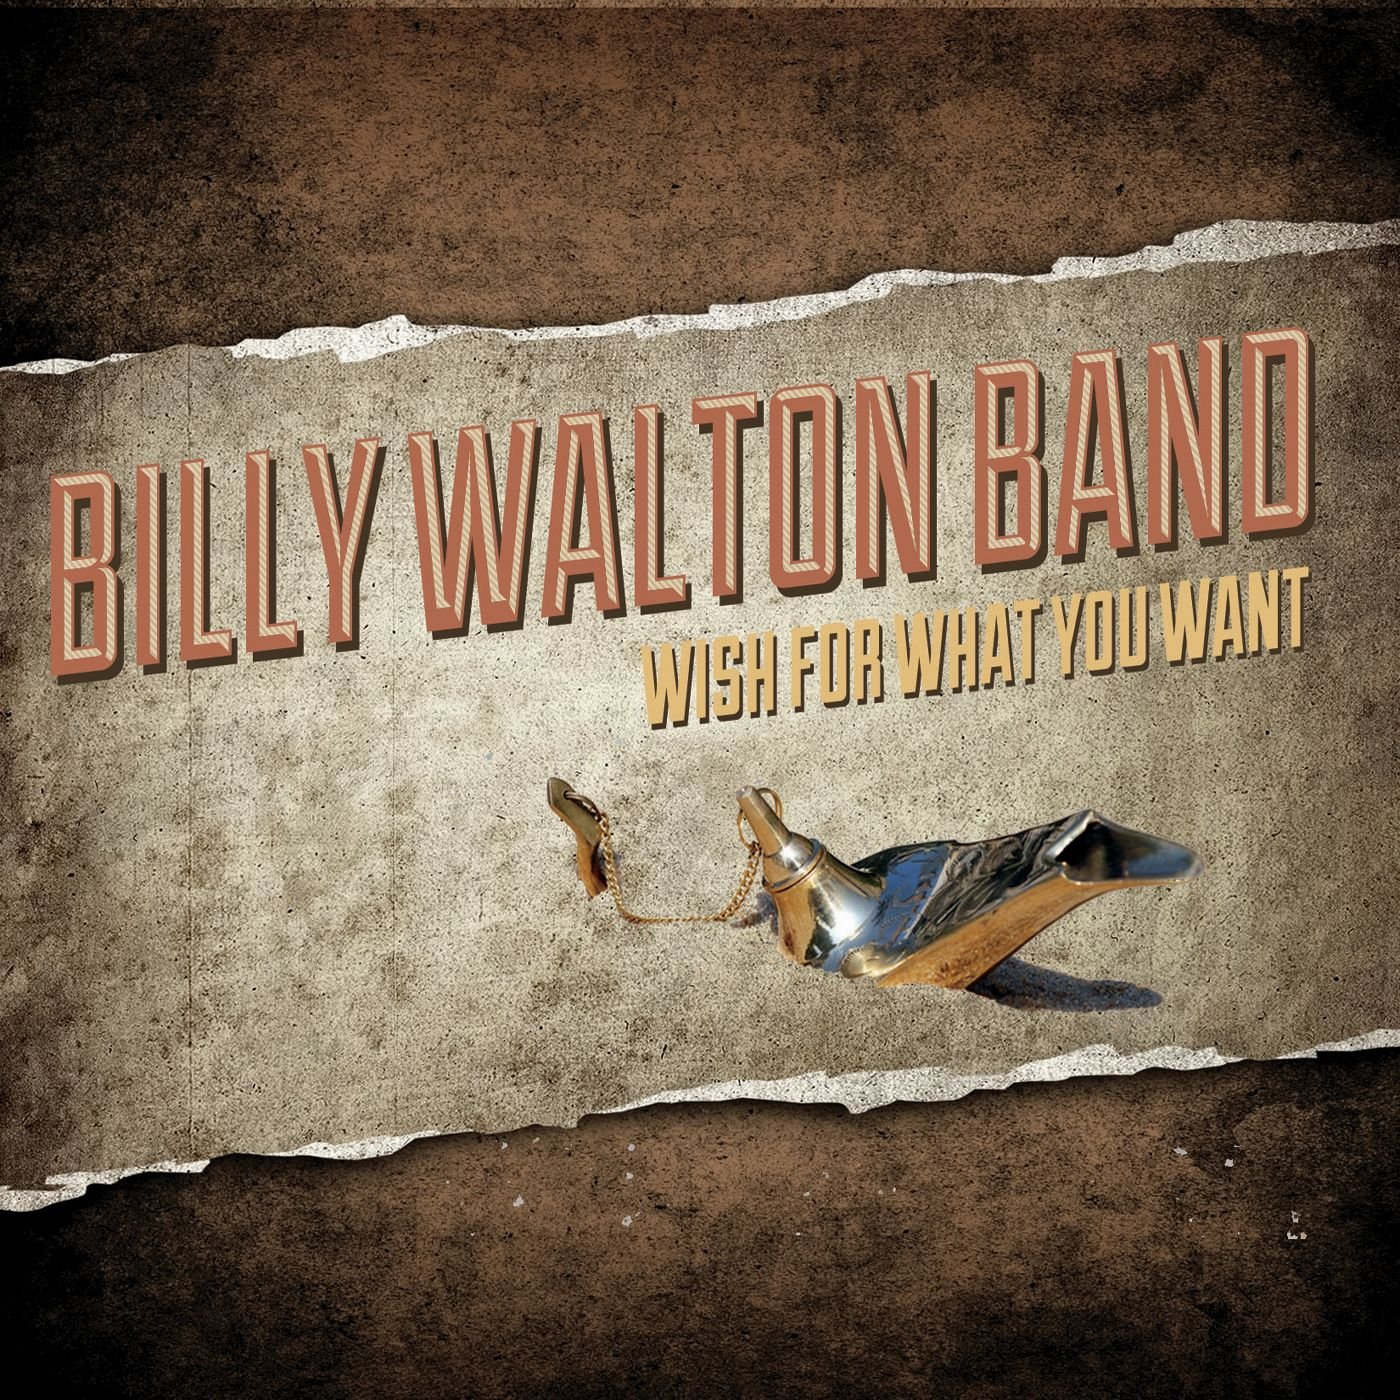 Billy Walton Band - Wish For What You Want (2014) [FLAC] Download